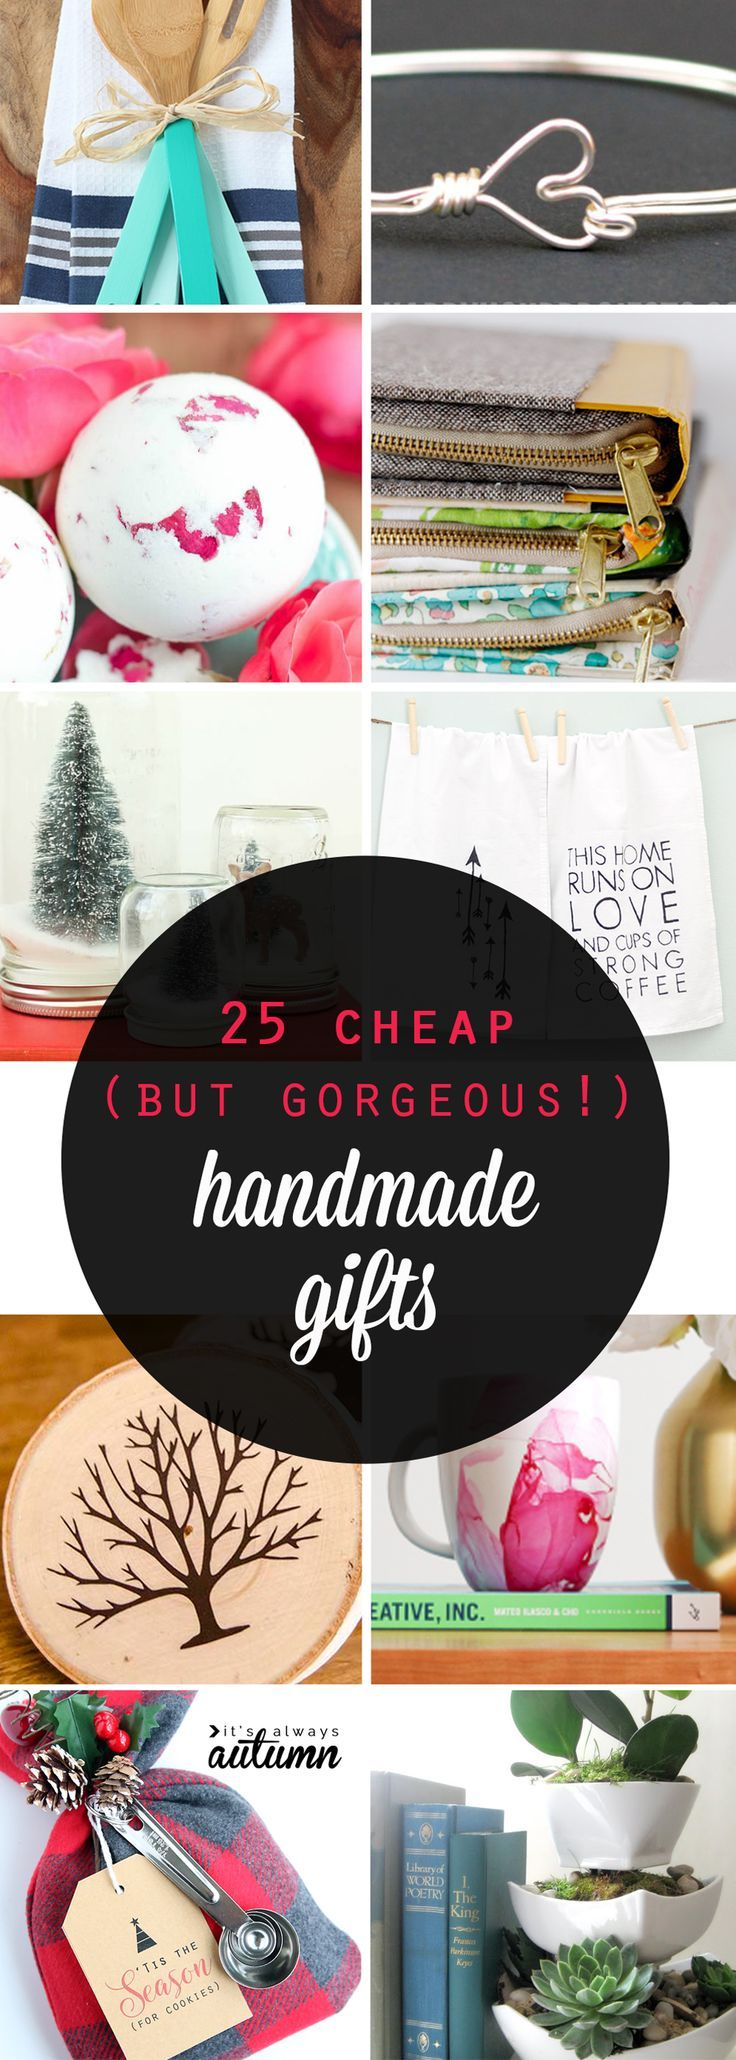 25 cheap but gorgeous diy gift ideas christmas gifts holidays 25 cheap but gorgeous diy gift ideas solutioingenieria Choice Image